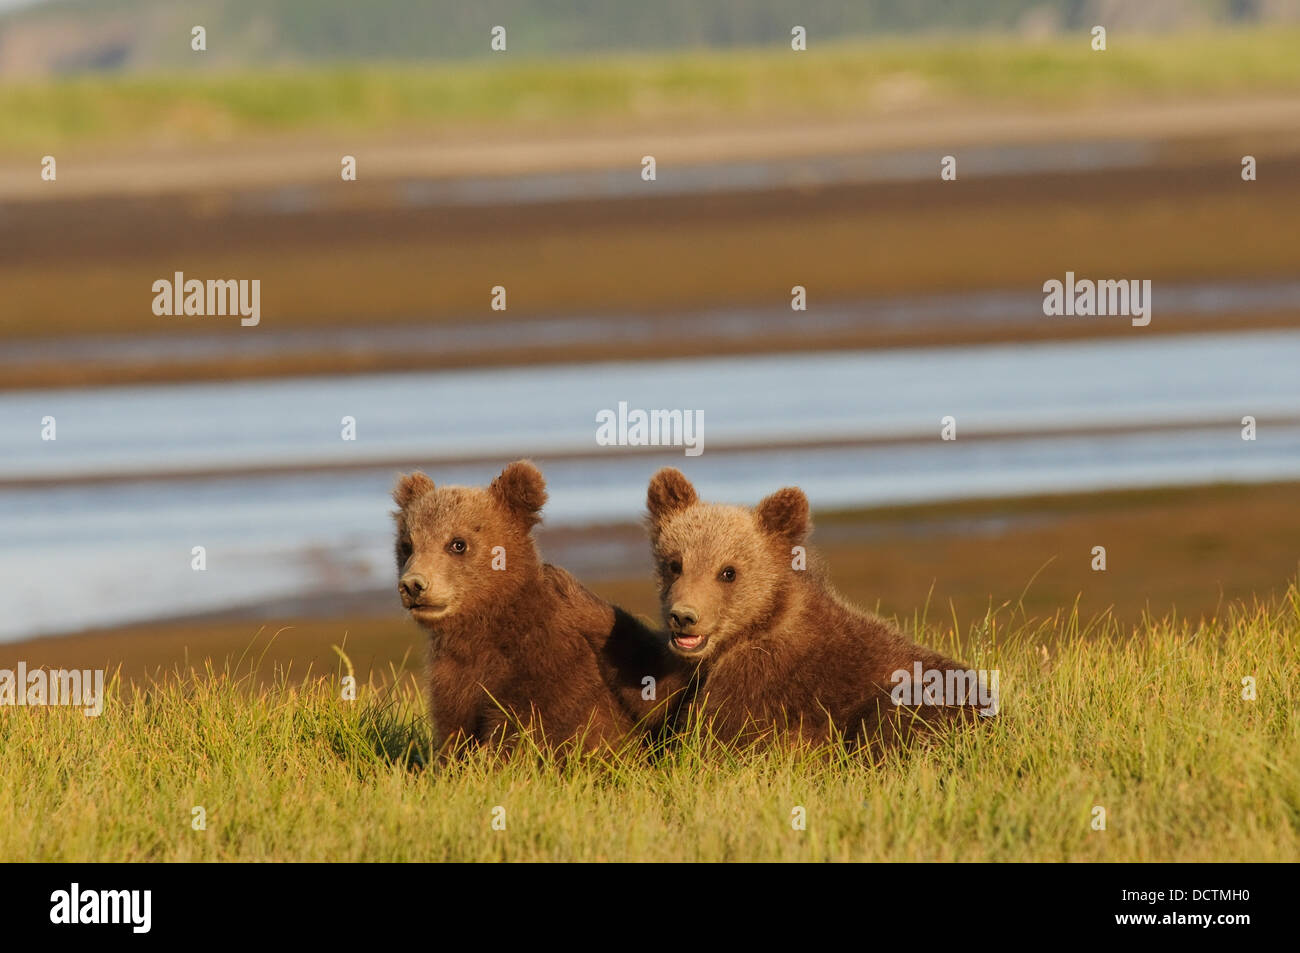 Two Grizzly Bear (Ursus Arctos Horribilis) Cubs; Alaska, United States Of America - Stock Image